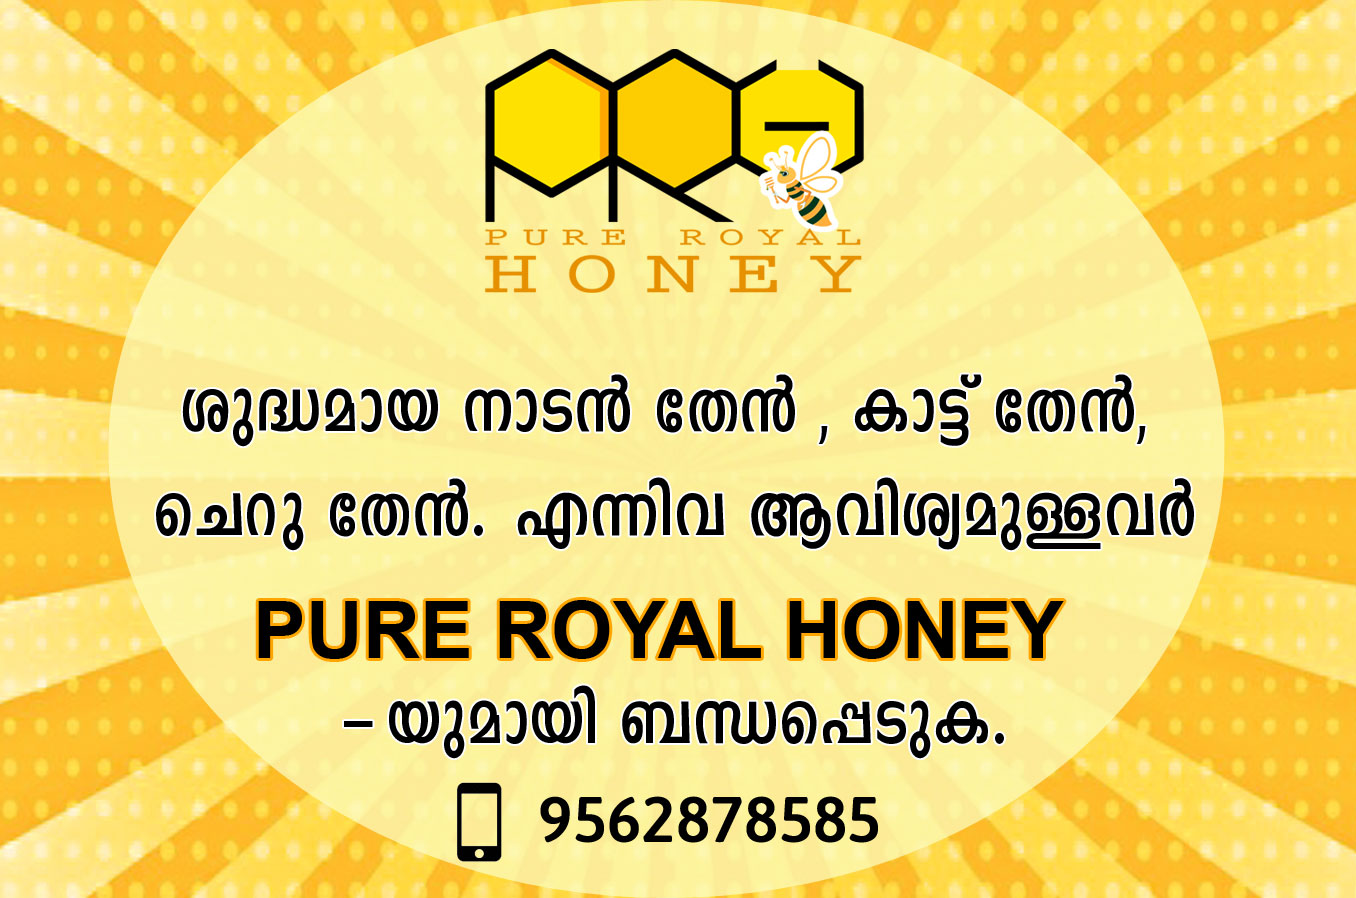 Omassery ,Kozhikode, Omassery ,Kozhikode Directory, Omassery ,Kozhikode Yellowpages, Omassery ,Kozhikode News, Omassery ,Kozhikode Guide, Tourist Spots in Omassery ,Kozhikode, Omassery ,Kozhikode History, Omassery ,Kozhikode Culture, Omassery ,Kozhikode Business, Omassery ,Kozhikode Economy, Omassery ,Kozhikode Shopping, Omassery ,Kozhikode Classifieds by Omassery ,Kozhikodeonline, instagram omassery ,omasseryonline , omasseryonline.com ,Call Taxi Services in Omassery, Kozhikode - Airport Taxi Service - Omassery , Omassery Online , omasseryonline , Bus Time Services in Omassery, Call Taxi Services near Omassery, Kozhikode , Find best Airport Taxi Service, Get Phone Numbers, Address, Reviews, Photos, Maps for top Call Taxi Services in Kozhikode on Justdial , omassery online, omasseyonline.com, Omassery, List of Call Taxi Services in Omassery,Kozhikode, Reviews, Map, Address, Phone number, Contact Number, local, popular Call Taxi Services, top Call Taxi Services, Shops And Stores in Omassery, Shops And Stores, Omassery, list of Shops And Stores in Omassery, shops And stores in omassery, Thamarassery, Calicut, kerala, Cab & Taxi Services in Omassery, Kozhikode - Local Non AC Taxi Booking - Justdial, Omassery , instagram omassery ,omasseryonline , omasseryonline.com, Omassery Online, OmasseryOnline, OMASSERYONLINE, OMASSERY, OMY, omy, Cab & Taxi Services, Omassery, Kozhikode, Omassery , instagram omassery ,omasseryonline , omasseryonline.com, Omassery Online, OmasseryOnline, OMASSERYONLINE, OMASSERY, OMY, omy, Find Local Non Ac Cab For Airport & Nearby Areas, Get Phone Number, Address, Reviews For Taxi Service Enquiry in Omassery, Kozhikode on Omassery , instagram omassery ,omasseryonline , omasseryonline.com, Omassery Online, OmasseryOnline, OMASSERYONLINE, OMASSERY, OMY, omy, Justdial, Cabs in Omassery Kozhikode, Local Taxi Service, Airport Taxi Service, Non Ac Taxi Services, Taxi Service Enquiry, Taxi Wala, Call Taxi Services, Taxi Services, Phone number, Address, Review, Omassery , instagram omassery ,omasseryonline , omasseryonline.com, Omassery Online, OmasseryOnline, OMASSERYONLINE, OMASSERY, OMY, omy,Omassery ,Kozhikode, Omassery ,Kozhikode Directory, Omassery ,Kozhikode Yellowpages, Omassery ,Kozhikode News, Omassery ,Kozhikode Guide, Tourist Spots in Omassery ,Kozhikode, Omassery ,Kozhikode History, Omassery ,Kozhikode Culture, Omassery ,Kozhikode Business, Omassery ,Kozhikode Economy, Omassery ,Kozhikode Shopping, Omassery ,Kozhikode Classifieds by Omassery ,Kozhikodeonline, instagram omassery ,omasseryonline , omasseryonline.com ,Career Services in Omassery, Kozhikode - careers , CAREERS, CAREER Service - Omassery , Omassery Online , omasseryonline , Bus Time Services in Omassery, Career placement Services near Omassery, Kozhikode, Find best Career Service, Get Phone Numbers, Address, Reviews, Photos, Placement for top Careers Services in Kozhikode on Justdial , omassery online, omasseyonline.com, Omassery, List of Careers, career Services in Omassery,Kozhikode, Reviews, Map, Address, Phone number, Contact Number, local, popular Careers, career Services, top Careers, career Services, Shops And Stores in Omassery, Shops And Stores, Omassery, list of Shops And Stores in Omassery, shops And stores in omassery, Thamarassery, Calicut, kerala, job & careers Services in Omassery, Kozhikode - Local careers search and Booking - Justdial, Omassery , instagram omassery ,omasseryonline , omasseryonline.com, Omassery Online, OmasseryOnline, OMASSERYONLINE, OMASSERY, OMY, omy, Careers & Job Services, Omassery, Kozhikode, Omassery , instagram omassery ,omasseryonline , omasseryonline.com, Omassery Online, OmasseryOnline, OMASSERYONLINE, OMASSERY, OMY, omy, Find Local Non Ac Cab For Airport & Nearby Areas, Get Phone Number, Address, Reviews For Taxi Service Enquiry in Omassery, Kozhikode on Omassery , instagram omassery ,omasseryonline , omasseryonline.com, Omassery Online, OmasseryOnline, OMASSERYONLINE, OMASSERY, OMY, omy, Justdial, Cabs in Omassery Kozhikode, career Service,career placement Service, Non Ac Taxi Services, Taxi Service Enquiry, Taxi Wala, Careers, career Services, careers in omassey & career Services in omy, Phone number, Address, Review, Omassery , instagram omassery ,omasseryonline , omasseryonline.com, Omassery Online, OmasseryOnline, OMASSERYONLINE, OMASSERY, OMY, omy,blood groups in omassery, Omassery , instagram omassery ,omasseryonline , omasseryonline.com, Omassery Online, OmasseryOnline, OMASSERYONLINE, OMASSERY, OMY, omy, blood bank in Omassery , instagram omassery ,omasseryonline , omasseryonline.com, Omassery Online, OmasseryOnline, OMASSERYONLINE, OMASSERY, OMY, omy,blood donors Omassery , instagram omassery ,omasseryonline , omasseryonline.com, Omassery Online, OmasseryOnline, OMASSERYONLINE, OMASSERY, OMY, omy , bloodbank, blood online, bank , blood, donors, omassery blood bank, blood needs, blood bank near omassery, calicut, thamarassery, kozhikode, kerala,Omassery , instagram omassery ,omasseryonline , omasseryonline.com, Omassery Online, OmasseryOnline, OMASSERYONLINE, OMASSERY, OMY, omy, save life, donate blood, blood register, register as a blood donor, blood ,blood needs in omassery, Omassery , instagram omassery ,omasseryonline , omasseryonline.com, Omassery Online, OmasseryOnline, OMASSERYONLINE, OMASSERY, OMY, omy, blood recievers, hospital, hospitals near by places in omassery, Omassery , instagram omassery ,omasseryonline , omasseryonline.com, Omassery Online, OmasseryOnline, OMASSERYONLINE, OMASSERY, OMY, omy,Hospital in omassery, hospital near by me in omassery, Omassery , instagram omassery ,omasseryonline , omasseryonline.com, Omassery Online, OmasseryOnline, OMASSERYONLINE, OMASSERY, OMY, omy, hospitals in omassery, omassery hospitals, Omasseryonline hospitals Omassery , instagram omassery ,omasseryonline , omasseryonline.com, Omassery Online, OmasseryOnline, OMASSERYONLINE, OMASSERY, OMY, omy , health care services in omassery,Omassery , instagram omassery ,omasseryonline , omasseryonline.com, Omassery Online, OmasseryOnline, OMASSERYONLINE, OMASSERY, OMY, omy,Doctors  groups in omassery, Omassery , instagram omassery ,omasseryonline , omasseryonline.com, Omassery Online, OmasseryOnline, OMASSERYONLINE, OMASSERY, OMY, omy, Doctors  services in Omassery , instagram omassery ,omasseryonline , omasseryonline.com, Omassery Online, OmasseryOnline, OMASSERYONLINE, OMASSERY, OMY, omy, Doctors  treatments Omassery , instagram omassery ,omasseryonline , omasseryonline.com, Omassery Online, OmasseryOnline, OMASSERYONLINE, OMASSERY, OMY, omy , Doctors services, Doctors  online, services , Doctors , treatments, omassery Doctors  services, Doctors  needs, Doctors  services near omassery, calicut, thamarassery, kozhikode, kerala,Omassery , instagram omassery ,omasseryonline , omasseryonline.com, Omassery Online, OmasseryOnline, OMASSERYONLINE, OMASSERY, OMY, omy, save life, donate Doctors , Doctors  register, register as a Doctors  donor, Doctors  ,Doctors  needs in omassery, Omassery , instagram omassery ,omasseryonline , omasseryonline.com, Omassery Online, OmasseryOnline, OMASSERYONLINE, OMASSERY, OMY, omy, Doctors  recievers, doctors, health clinics, health care, Doctors near by places in omassery, Omassery , instagram omassery ,omasseryonline , omasseryonline.com, Omassery Online, OmasseryOnline, OMASSERYONLINE, OMASSERY, OMY, omy,doctors, health clinics, health care in omassery, doctors, health clinics, health care near by me in omassery, Omassery , instagram omassery ,omasseryonline , omasseryonline.com, Omassery Online, OmasseryOnline, OMASSERYONLINE, OMASSERY, OMY, omy, Doctors in omassery, omassery Doctors, Omasseryonline Doctors Omassery , instagram omassery ,omasseryonline , omasseryonline.com, Omassery Online, OmasseryOnline, OMASSERYONLINE, OMASSERY, OMY, omy , health care services in omassery,Omassery , instagram omassery ,omasseryonline , omasseryonline.com, Omassery Online, OmasseryOnline, OMASSERYONLINE, OMASSERY, OMY, omy,Goverment Offices in omassery, Omassery , instagram omassery ,omasseryonline , omasseryonline.com, Omassery Online, OmasseryOnline, OMASSERYONLINE, OMASSERY, OMY, omy, Goverment Offices  services in Omassery , instagram omassery ,omasseryonline , omasseryonline.com, Omassery Online, OmasseryOnline, OMASSERYONLINE, OMASSERY, OMY, omy, Goverment Offices  treatments Omassery , instagram omassery ,omasseryonline , omasseryonline.com, Omassery Online, OmasseryOnline, OMASSERYONLINE, OMASSERY, OMY, omy , Goverment Offices services, Goverment Offices  online, services , Goverment Offices , treatments, omassery Goverment Offices  services, Goverment Offices  needs, Goverment Offices  services near omassery, calicut, thamarassery, kozhikode, kerala,Omassery , instagram omassery ,omasseryonline , omasseryonline.com, Omassery Online, OmasseryOnline, OMASSERYONLINE, OMASSERY, OMY, omy, save life, donate Goverment Offices , Goverment Offices  register, register as a Goverment Offices  donor, Goverment Offices  ,Goverment Offices  needs in omassery, Omassery , instagram omassery ,omasseryonline , omasseryonline.com, Omassery Online, OmasseryOnline, OMASSERYONLINE, OMASSERY, OMY, omy, Goverment Offices  recievers, Goverment Offices, offices & e-akshaya clinics, offices & e-akshaya care, Goverment Offices near by places in omassery, Omassery , instagram omassery ,omasseryonline , omasseryonline.com, Omassery Online, OmasseryOnline, OMASSERYONLINE, OMASSERY, OMY, omy,Goverment Offices, offices & e-akshaya clinics, offices & e-akshaya care in omassery, Goverment Offices, offices & e-akshaya clinics, offices & e-akshaya care near by me in omassery, Omassery , instagram omassery ,omasseryonline , omasseryonline.com, Omassery Online, OmasseryOnline, OMASSERYONLINE, OMASSERY, OMY, omy, Goverment Offices in omassery, omassery Goverment Offices, Omasseryonline Goverment Offices Omassery , instagram omassery ,omasseryonline , omasseryonline.com, Omassery Online, OmasseryOnline, OMASSERYONLINE, OMASSERY, OMY, omy , offices & e-akshaya care services in omassery,Omassery , instagram omassery ,omasseryonline , omasseryonline.com, Omassery Online, OmasseryOnline, OMASSERYONLINE, OMASSERY, OMY, omy,Omassery Online | Search Shops in Omassery, Search Job in Omassery, Search Blood in Omassery, Search Taxi in Omassery, Search Bus Time in Omassery | Omassery , Local Search ,online marketing in Omassery, Seo in Omassery, Target ad in Omassery,digital marketing in Omassery ,affiliate marketing in Omassery ,social media marketing in Omassery,marketing strategy in Omassery,email marketing in Omassery ,marketing plan in Omassery,advertising agency in Omassery,Omassery Bus Time Online,Omassery Taxi Numbers, Omassery Shops and Business Details, Omassery ,omasseryonline, Omassery Live , Omassery Updates, Omassery today,  Omessery, Omassery Blood bank ,Omassery Taxies, Omassery Travels, Omassery Hospitals, Omassery Bus time, Omassery Careers and Jobs , calicut jobs , job, hire, new jobs in the Worldwide, Omassery Calicut, Omassery Auto, Omassery Cars, Omassery Tumbo, Omassery Jeep, Omassery Bus, Omassery Lorry, Omassery Pickups, Taxi Contact Numbers Omassery, Bus time Omassery, www.omasseryonline.com, omy , shops in omy, omassery, calicut.